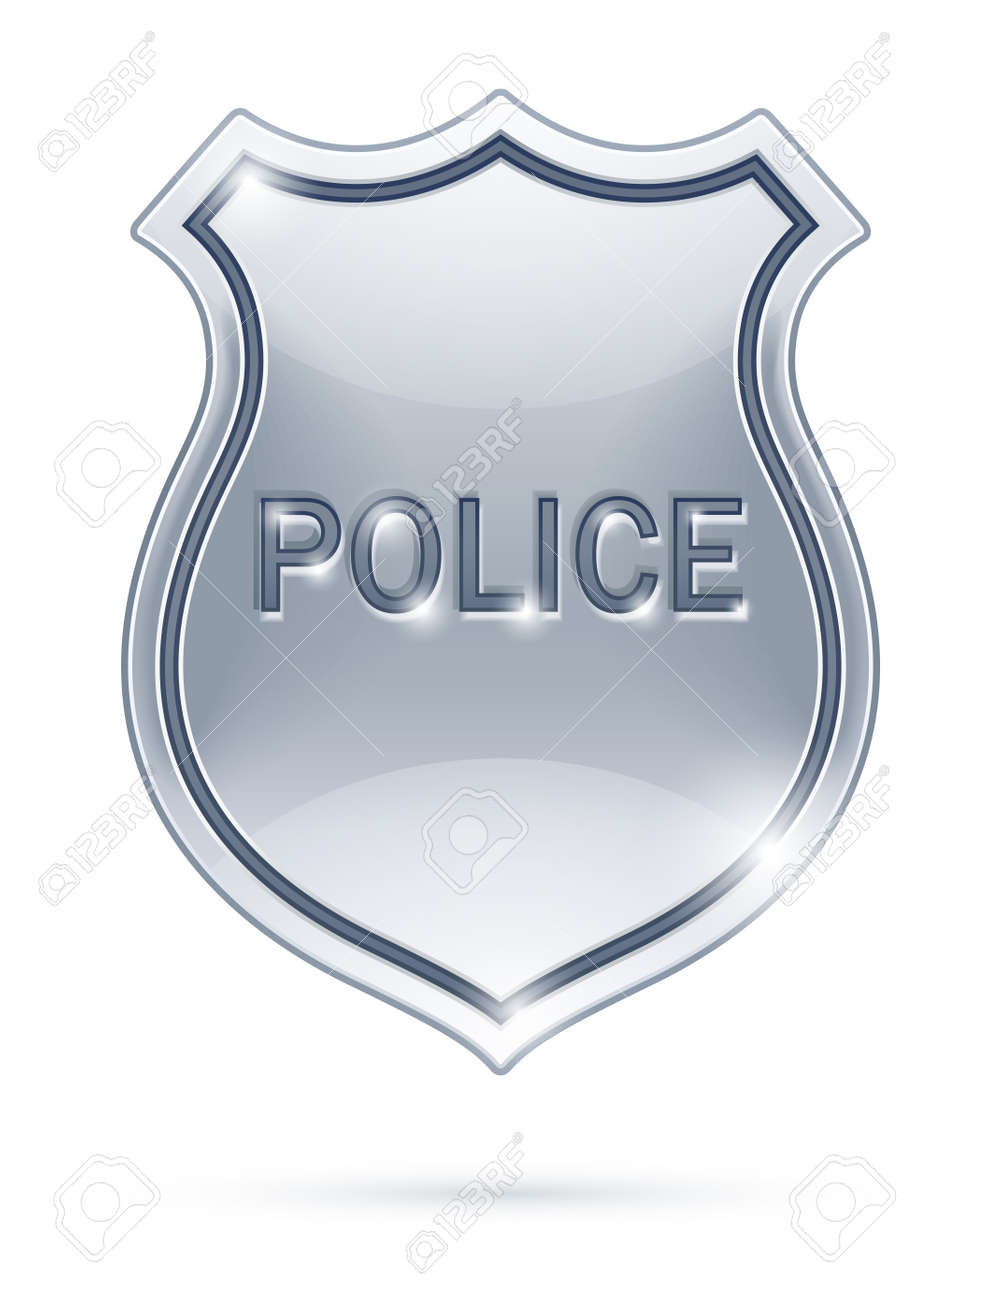 police badge vector illustration isolated on white background EPS10. Transparent objects used for shadows and lights drawing Stock Vector - 11944700